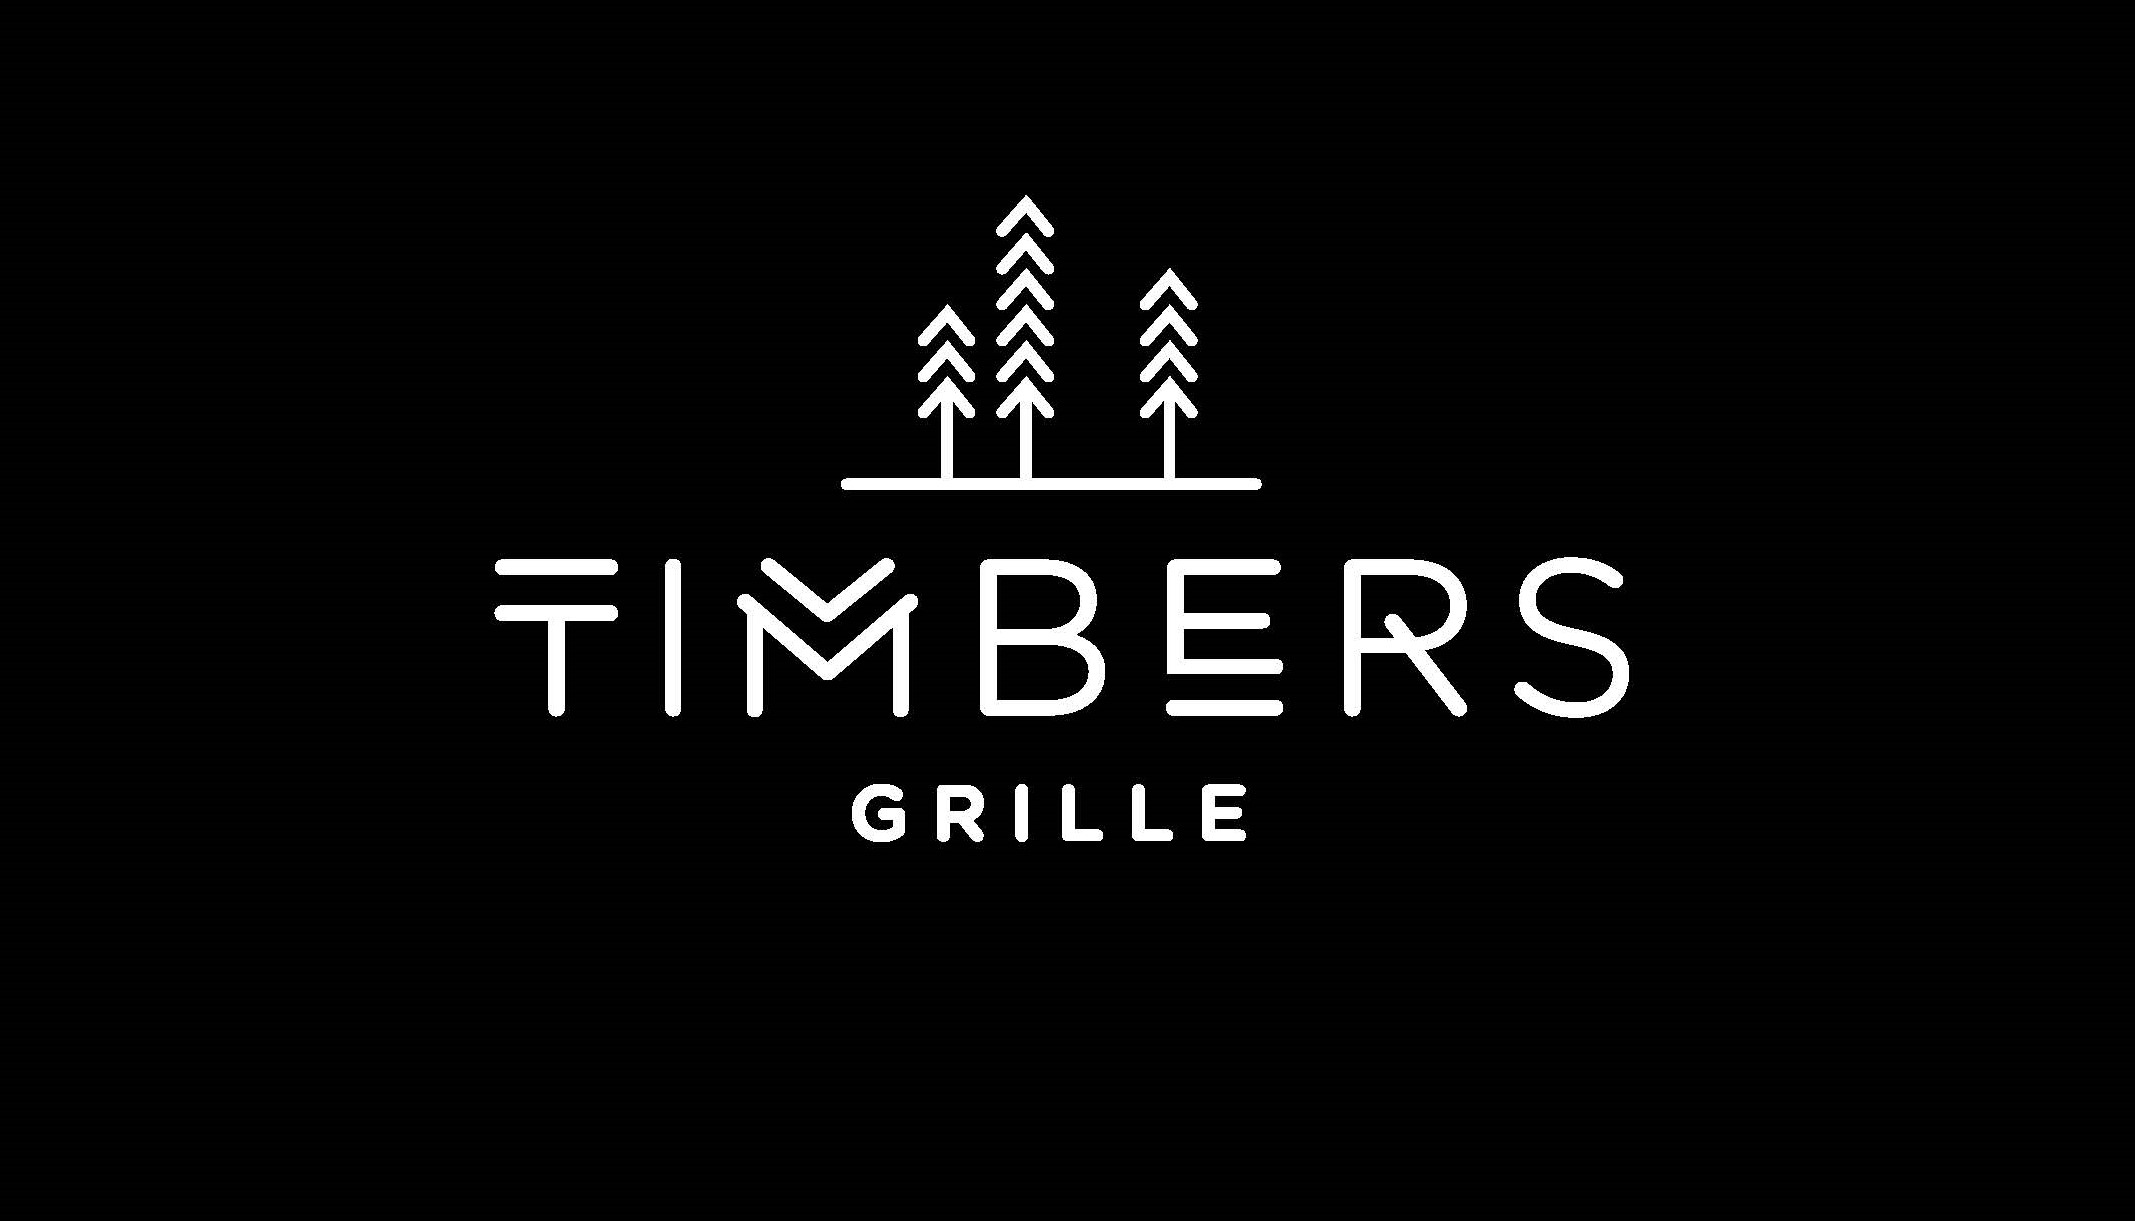 Timbers Grille